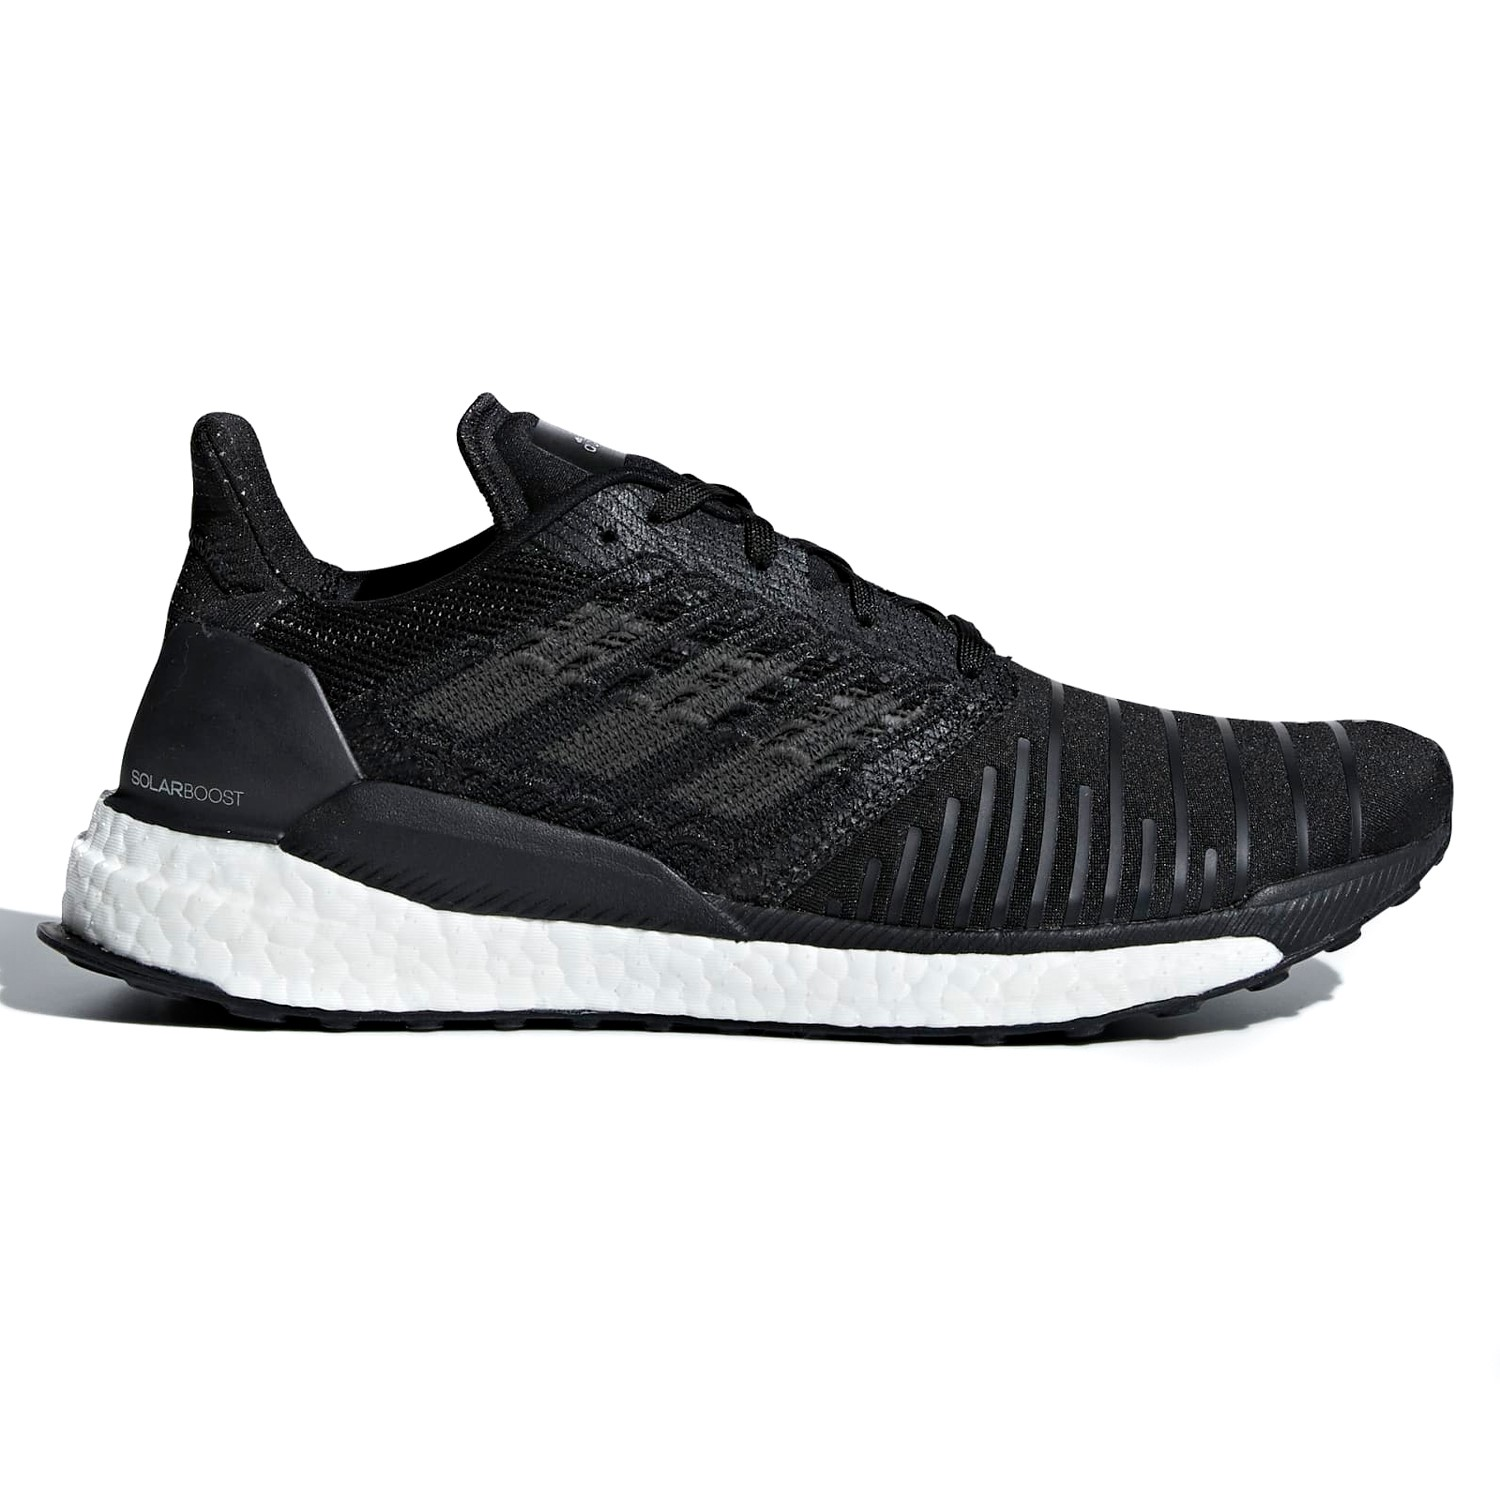 ed5d8dac3ba51 Adidas Solar Boost - Womens Running Shoes - Core Black Grey Footwear White